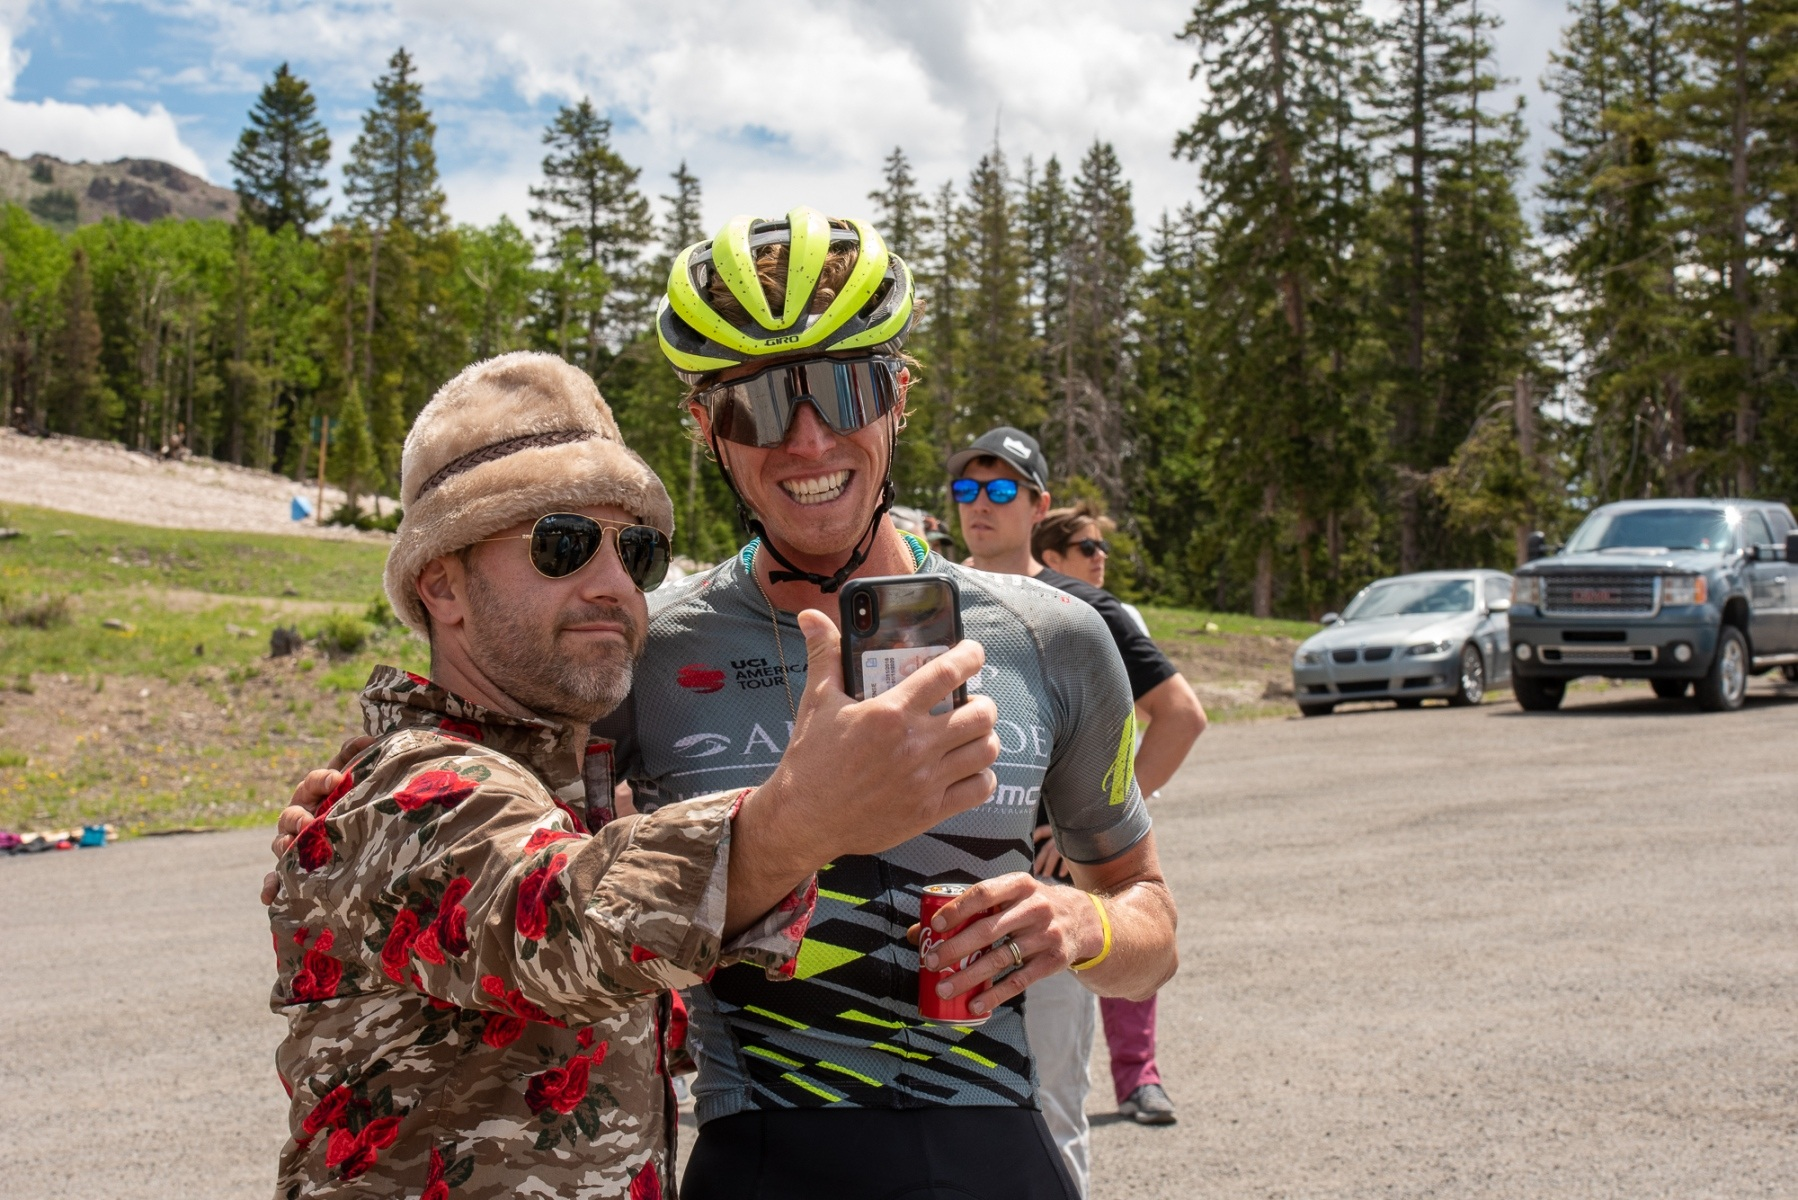 Race announcer Ali Goulet grabs a selfie with 6th place finisher TJ Eisenhart after the finish. Photo: Steven L. Sheffield.